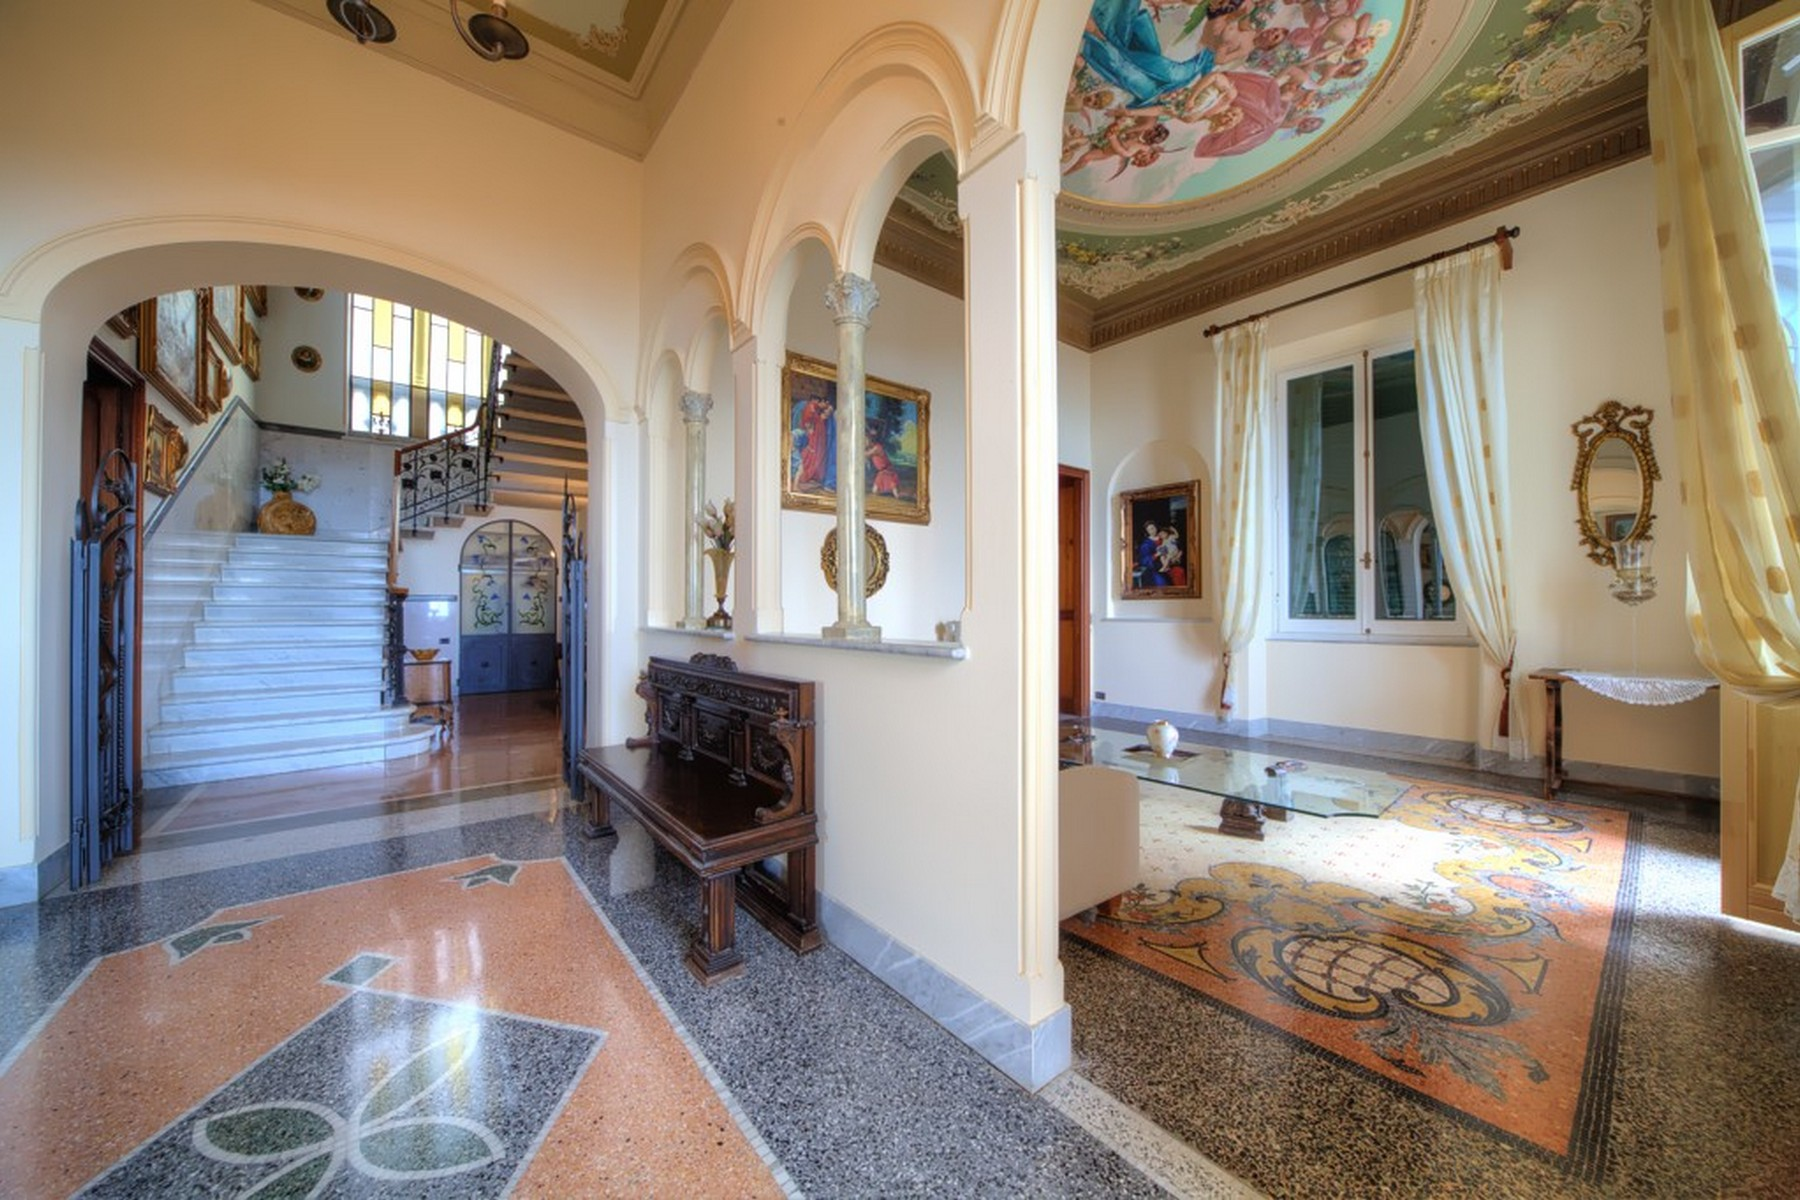 Additional photo for property listing at Art Noveau villa with awe-inspiring views Via XXV Aprile Camogli, Genoa 16032 Italie